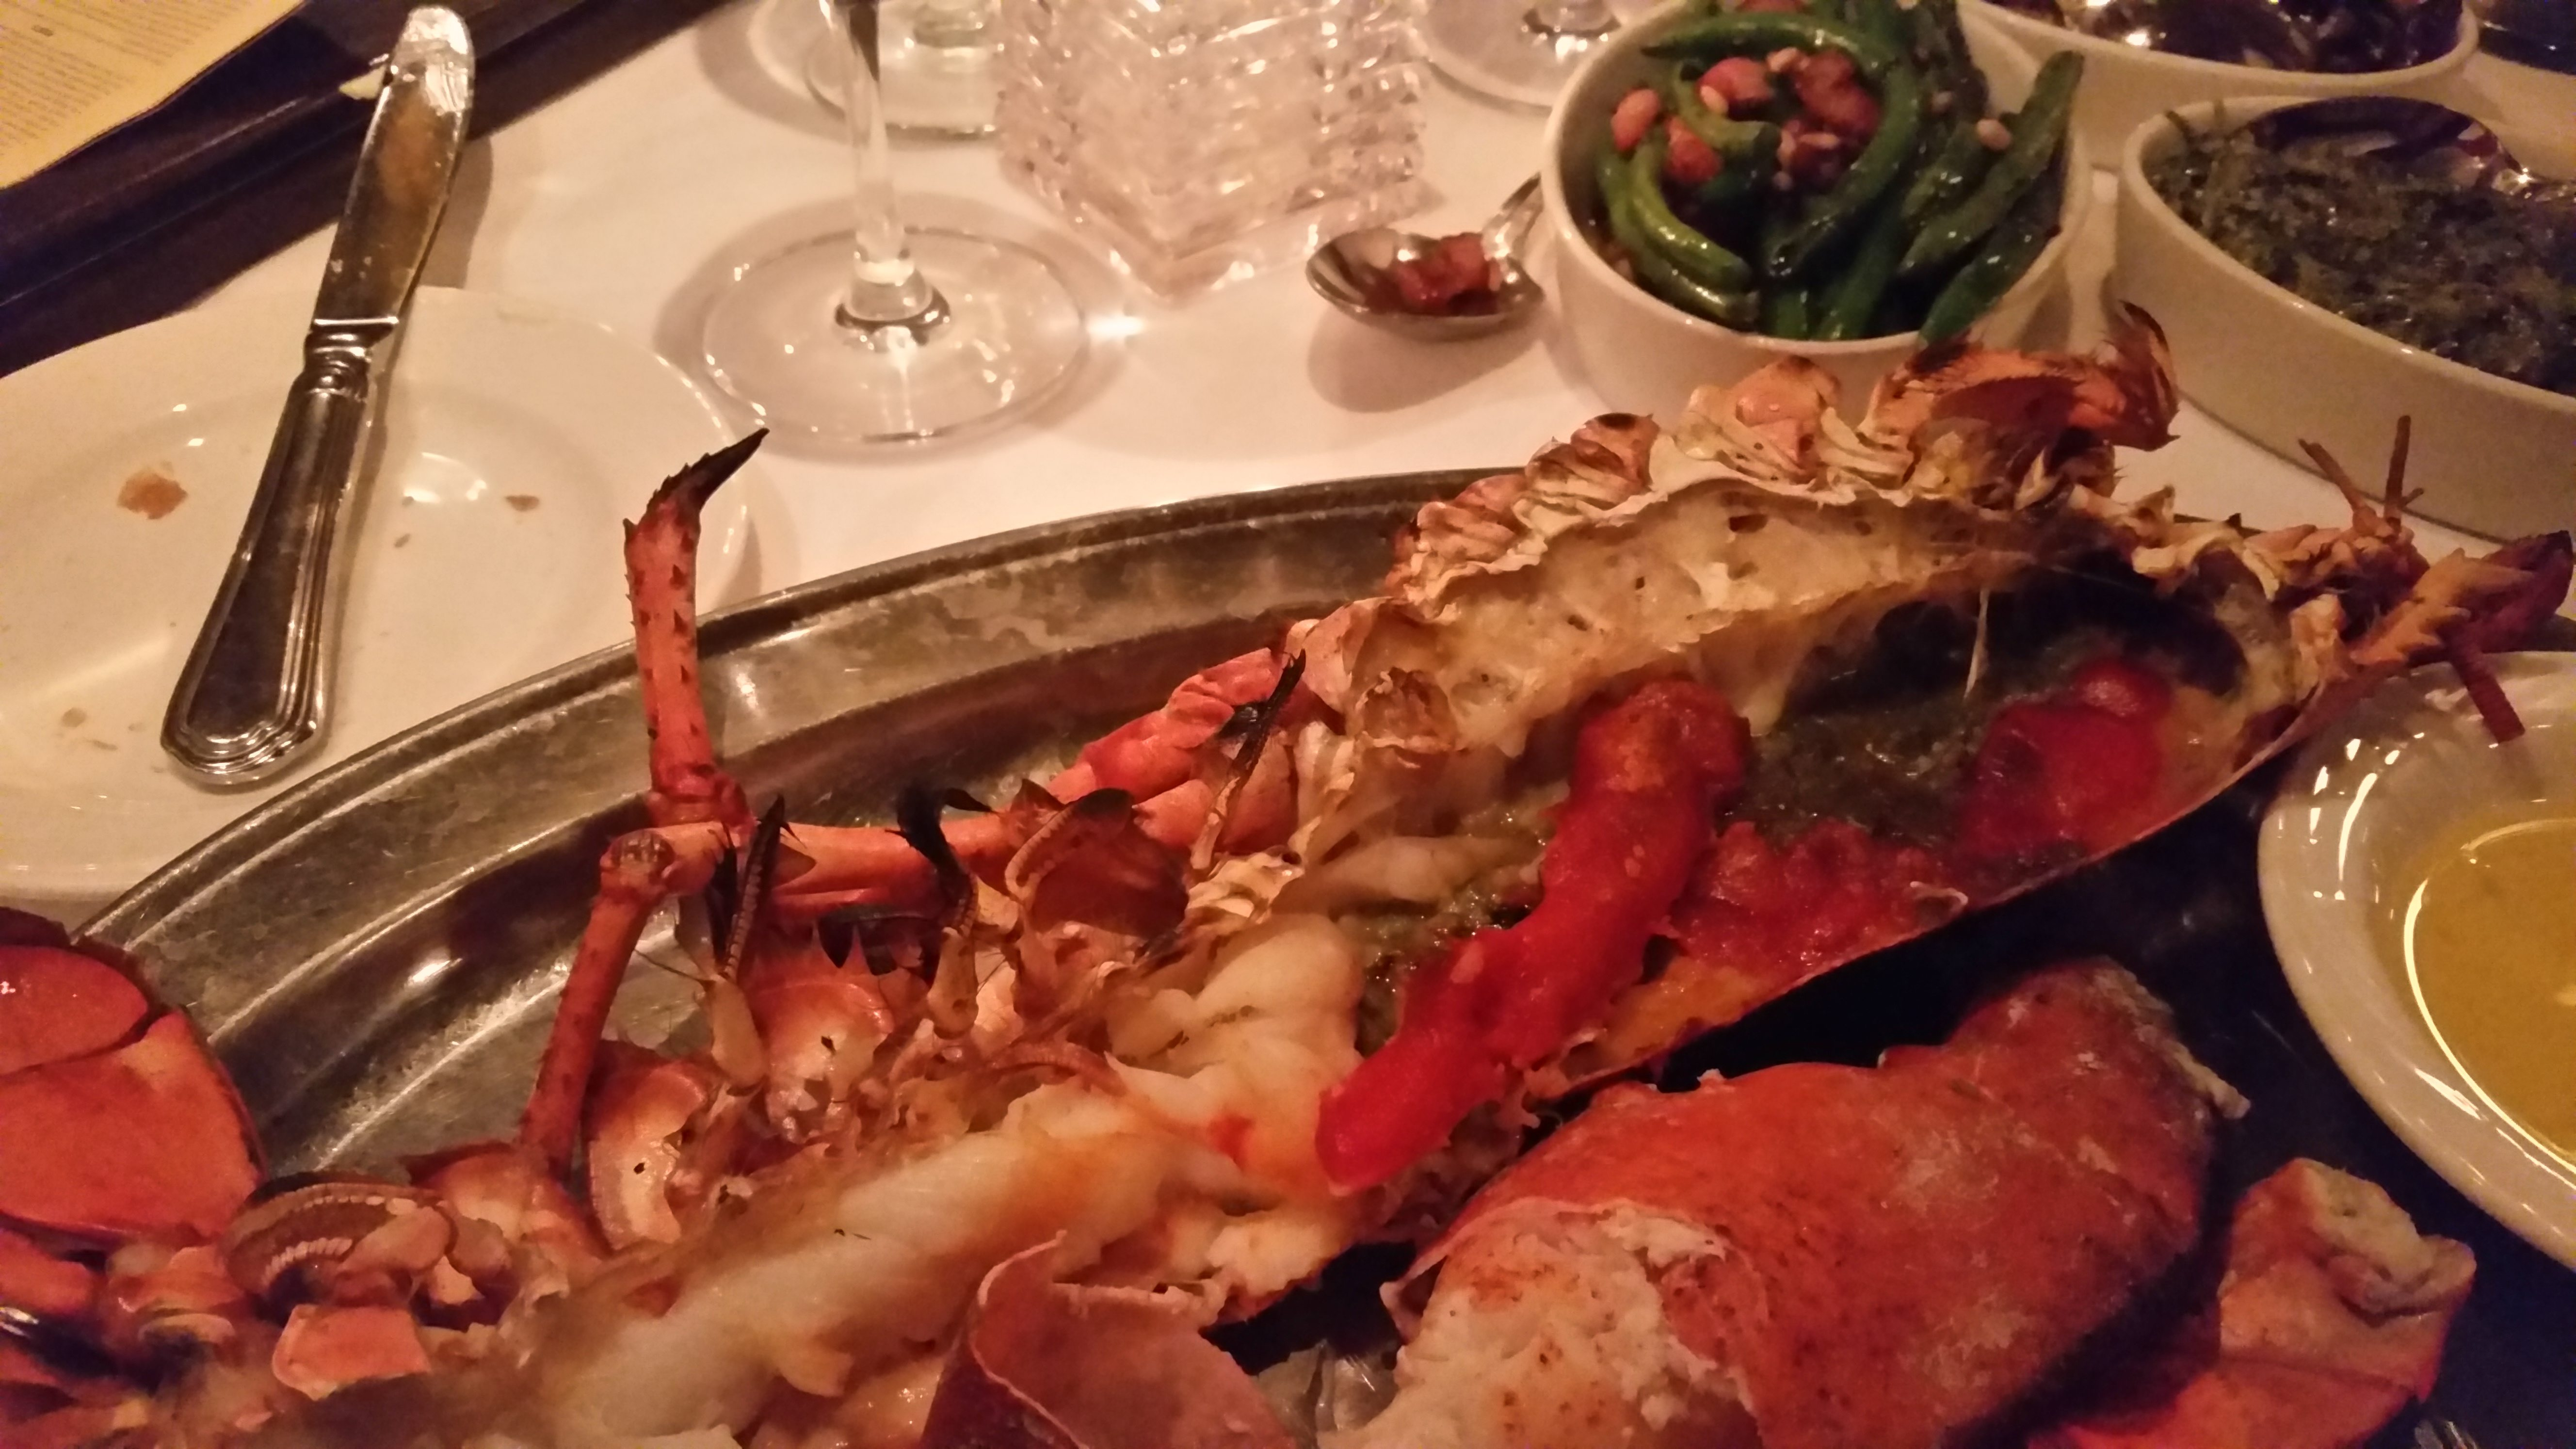 The Palm Restaurant in West Hollywood sets the bar for the best lobster and steak in the world ...